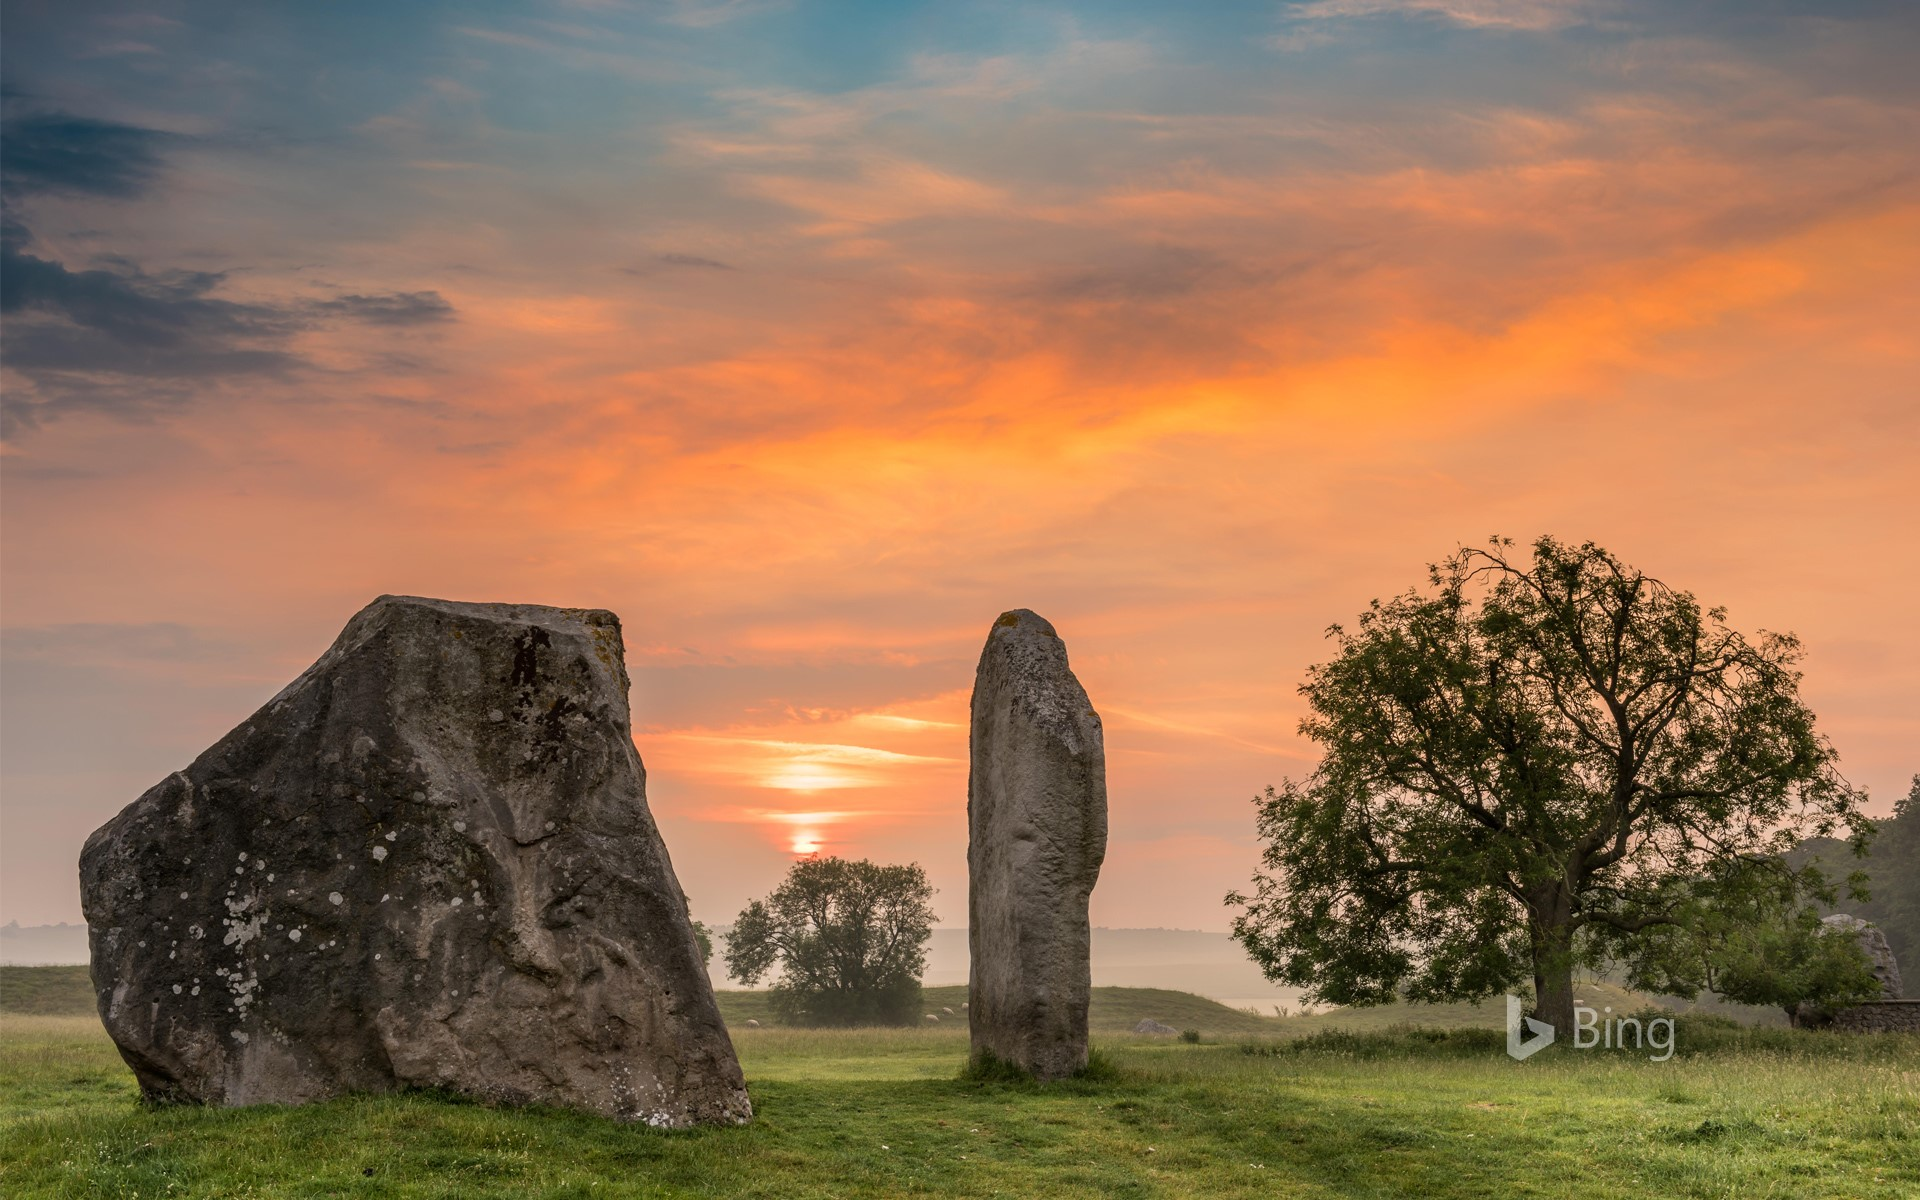 Dawn breaks over the ancient Sarsen Stones at Avebury, Wiltshire, at Summer Solstice